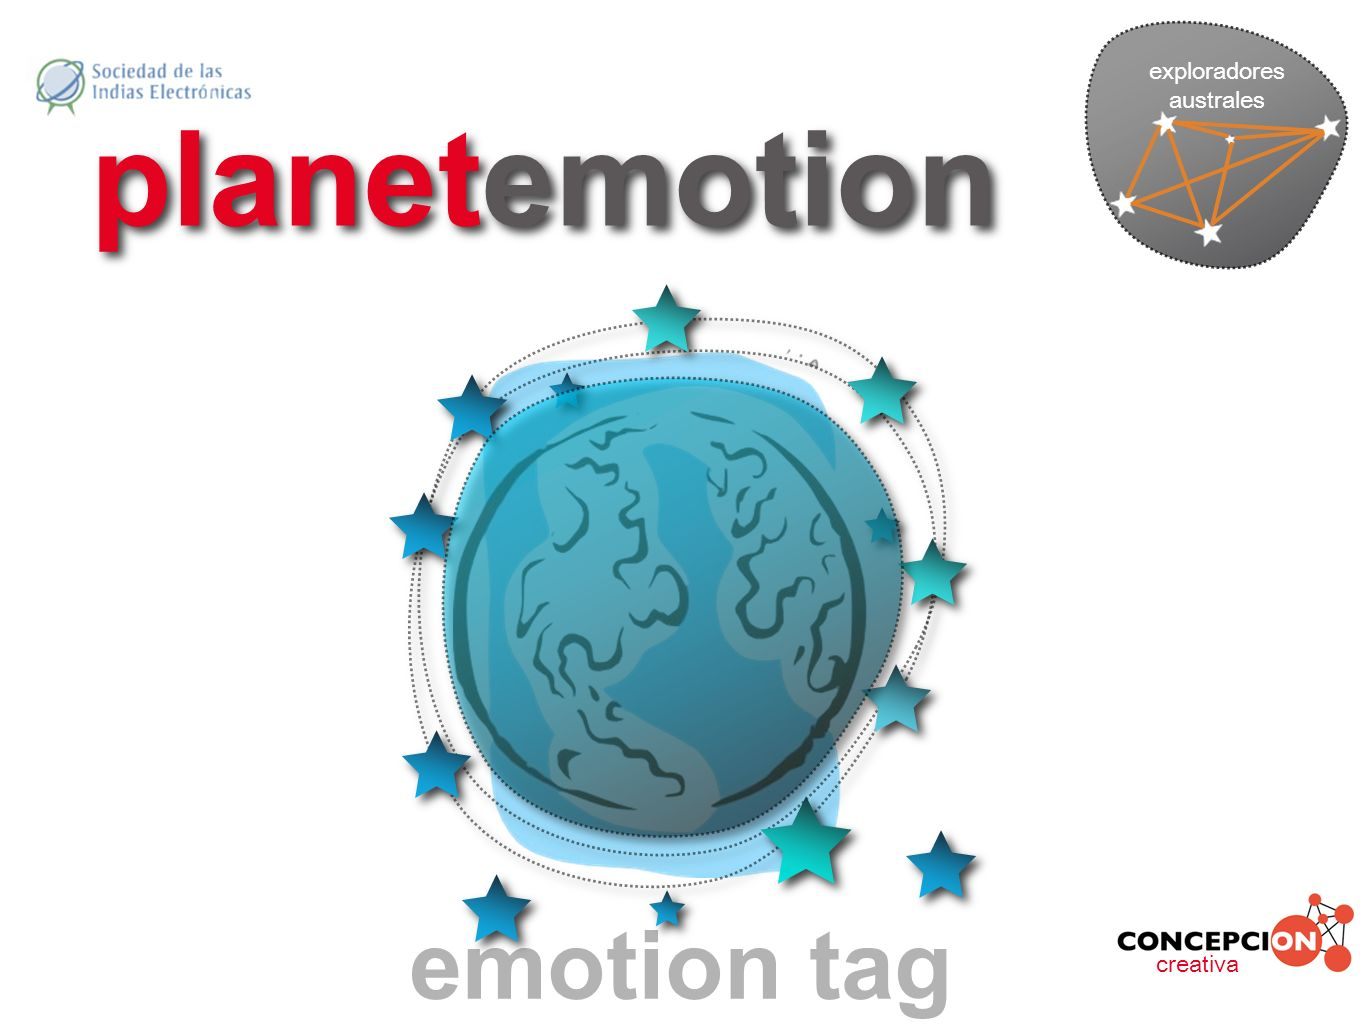 exploradores australes planetemotion creativa emotion tag